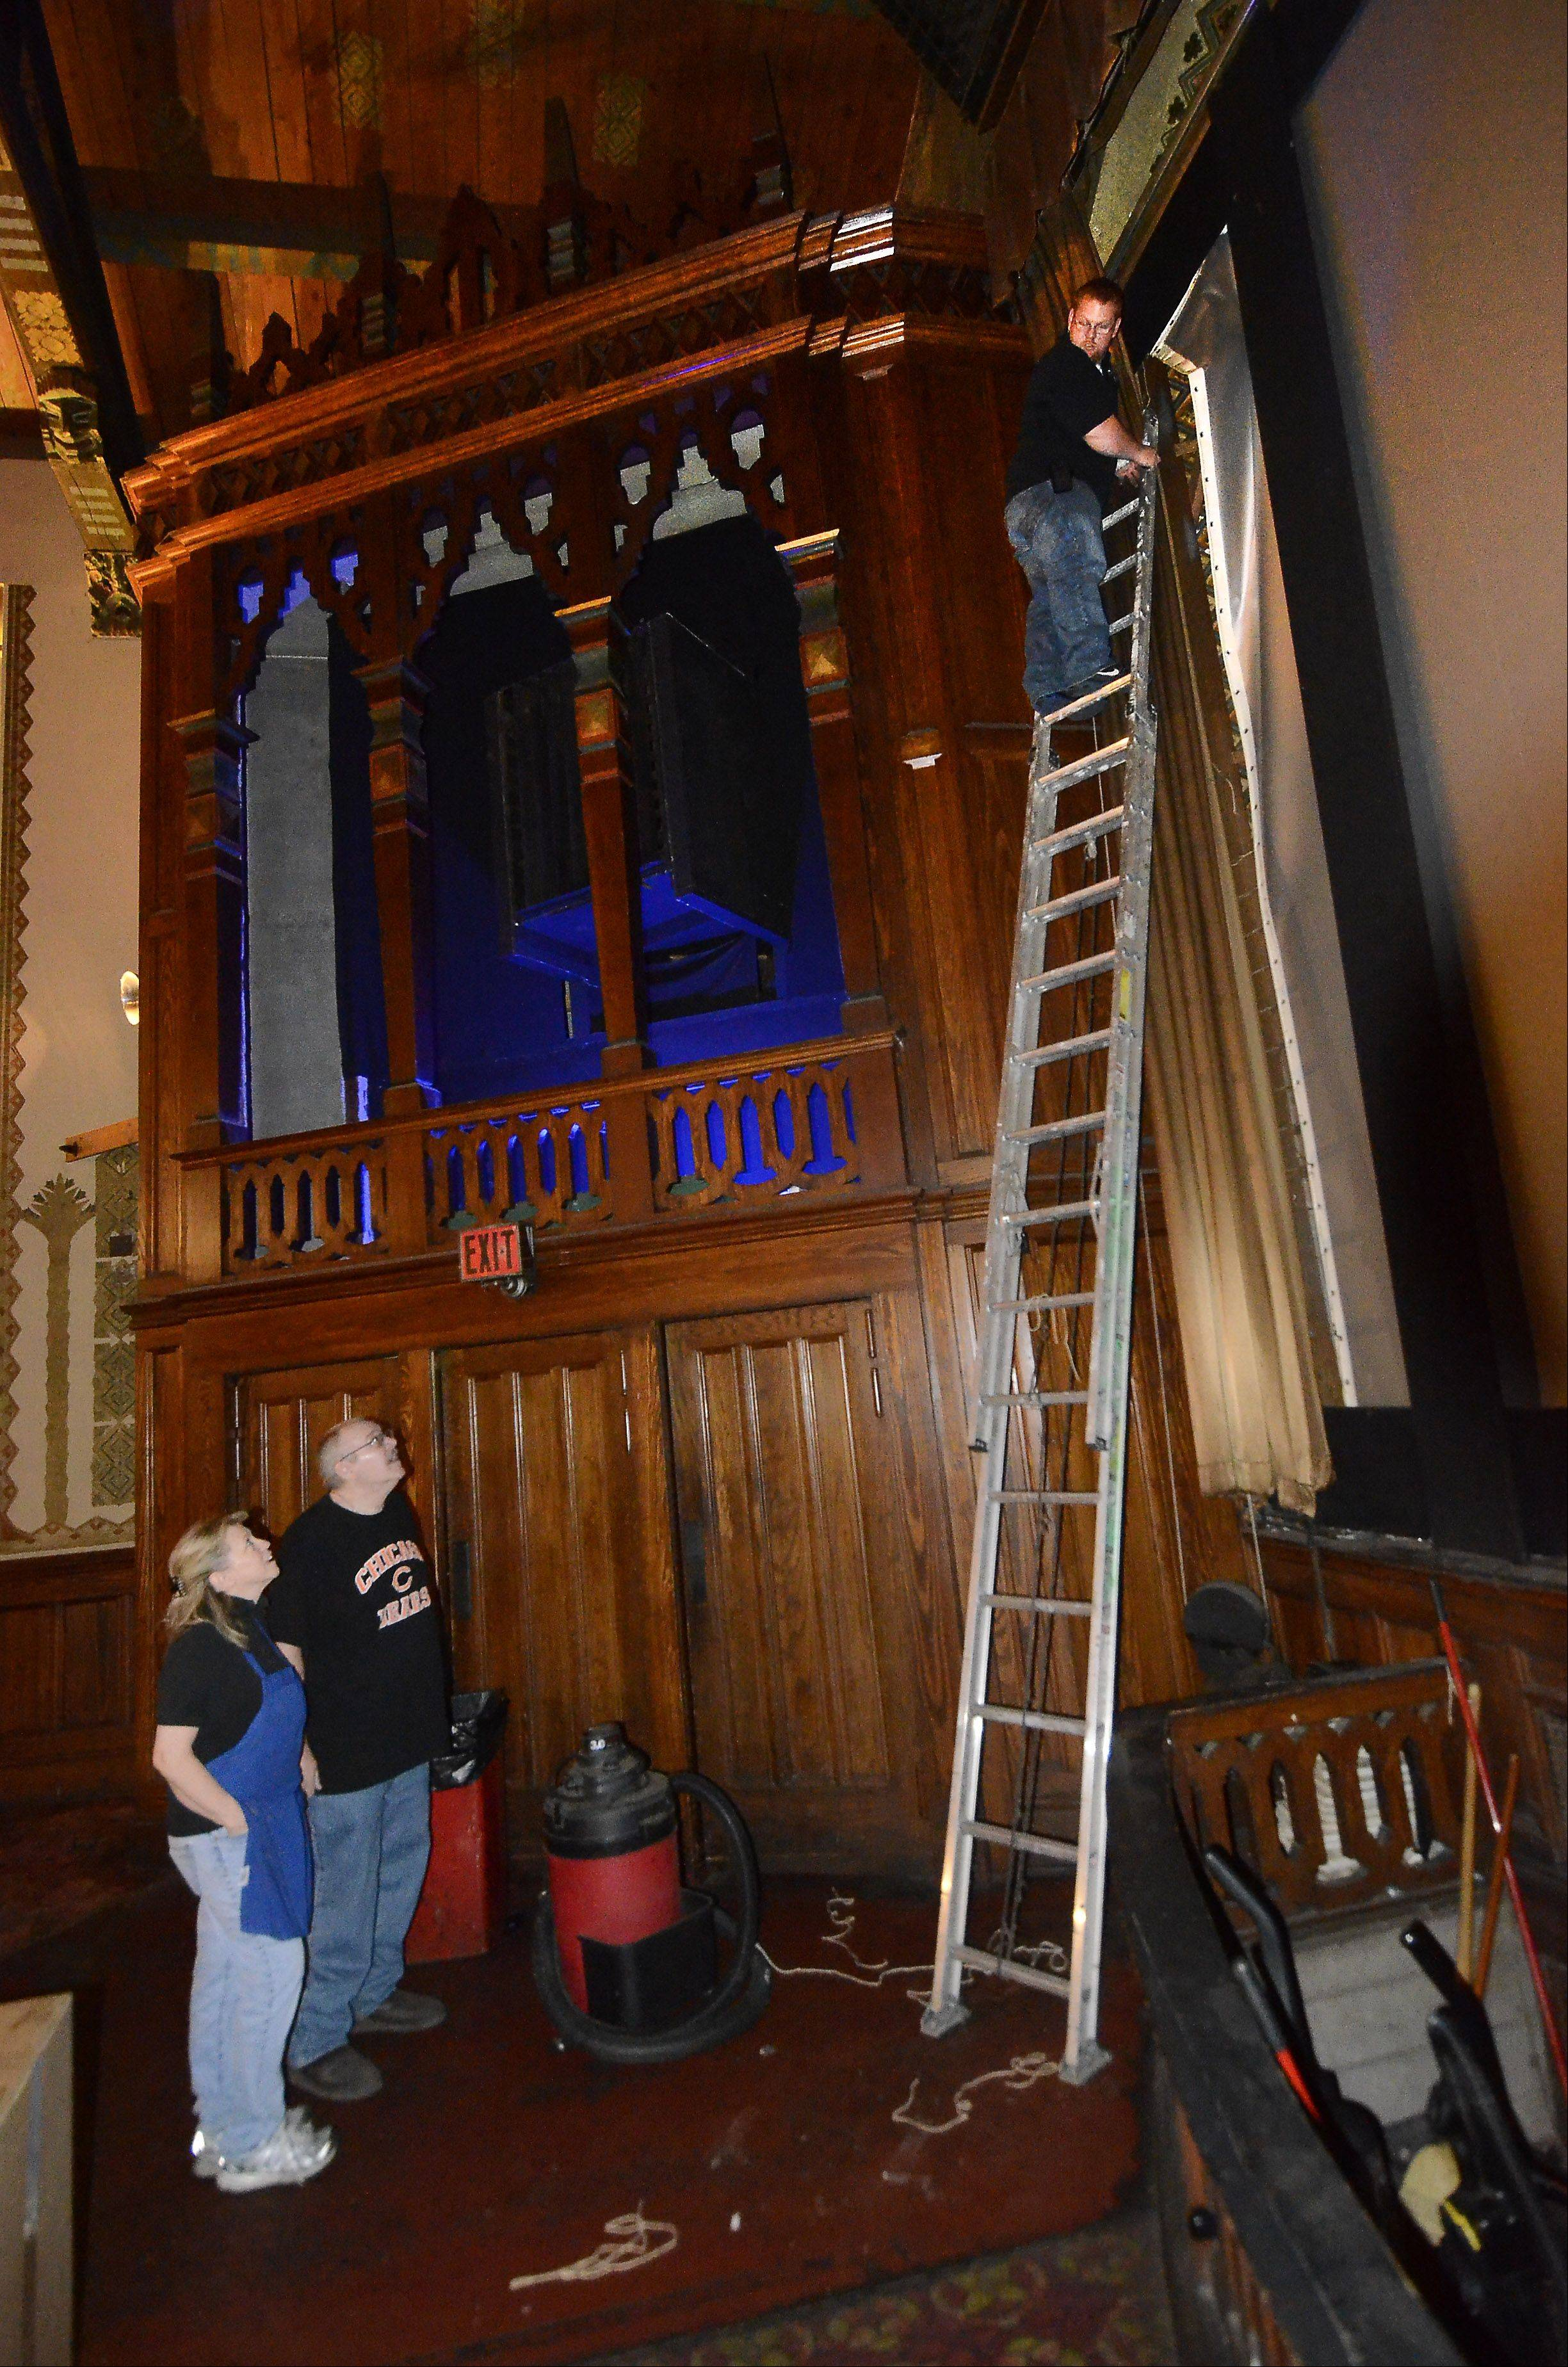 Catlow theater owners Roberta Rapata and Tim O'Connor talk with Levi Lampe as he prepares to install a new speaker near the screen in the historic Barrington theater. The theater also is welcoming a new digital projector purchased largely through patron donations.